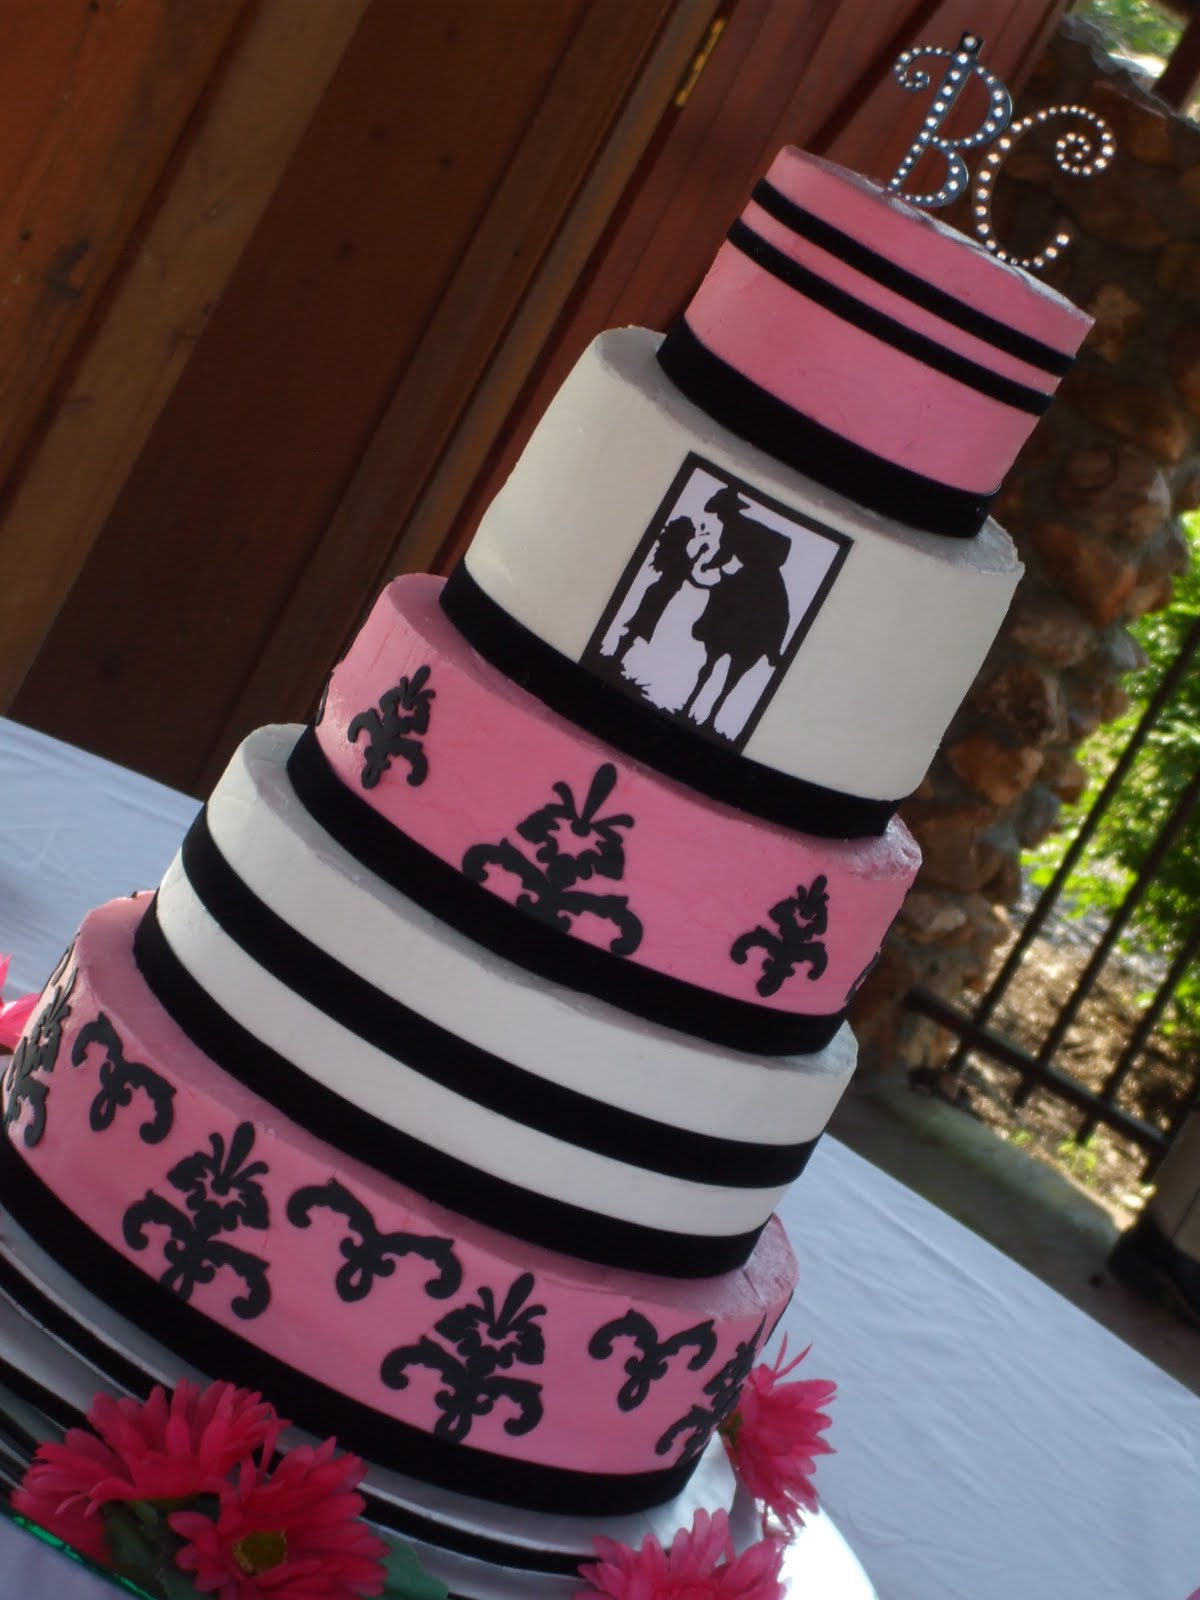 The Simple Cake: Pink & Black Western Theme Wedding Cake